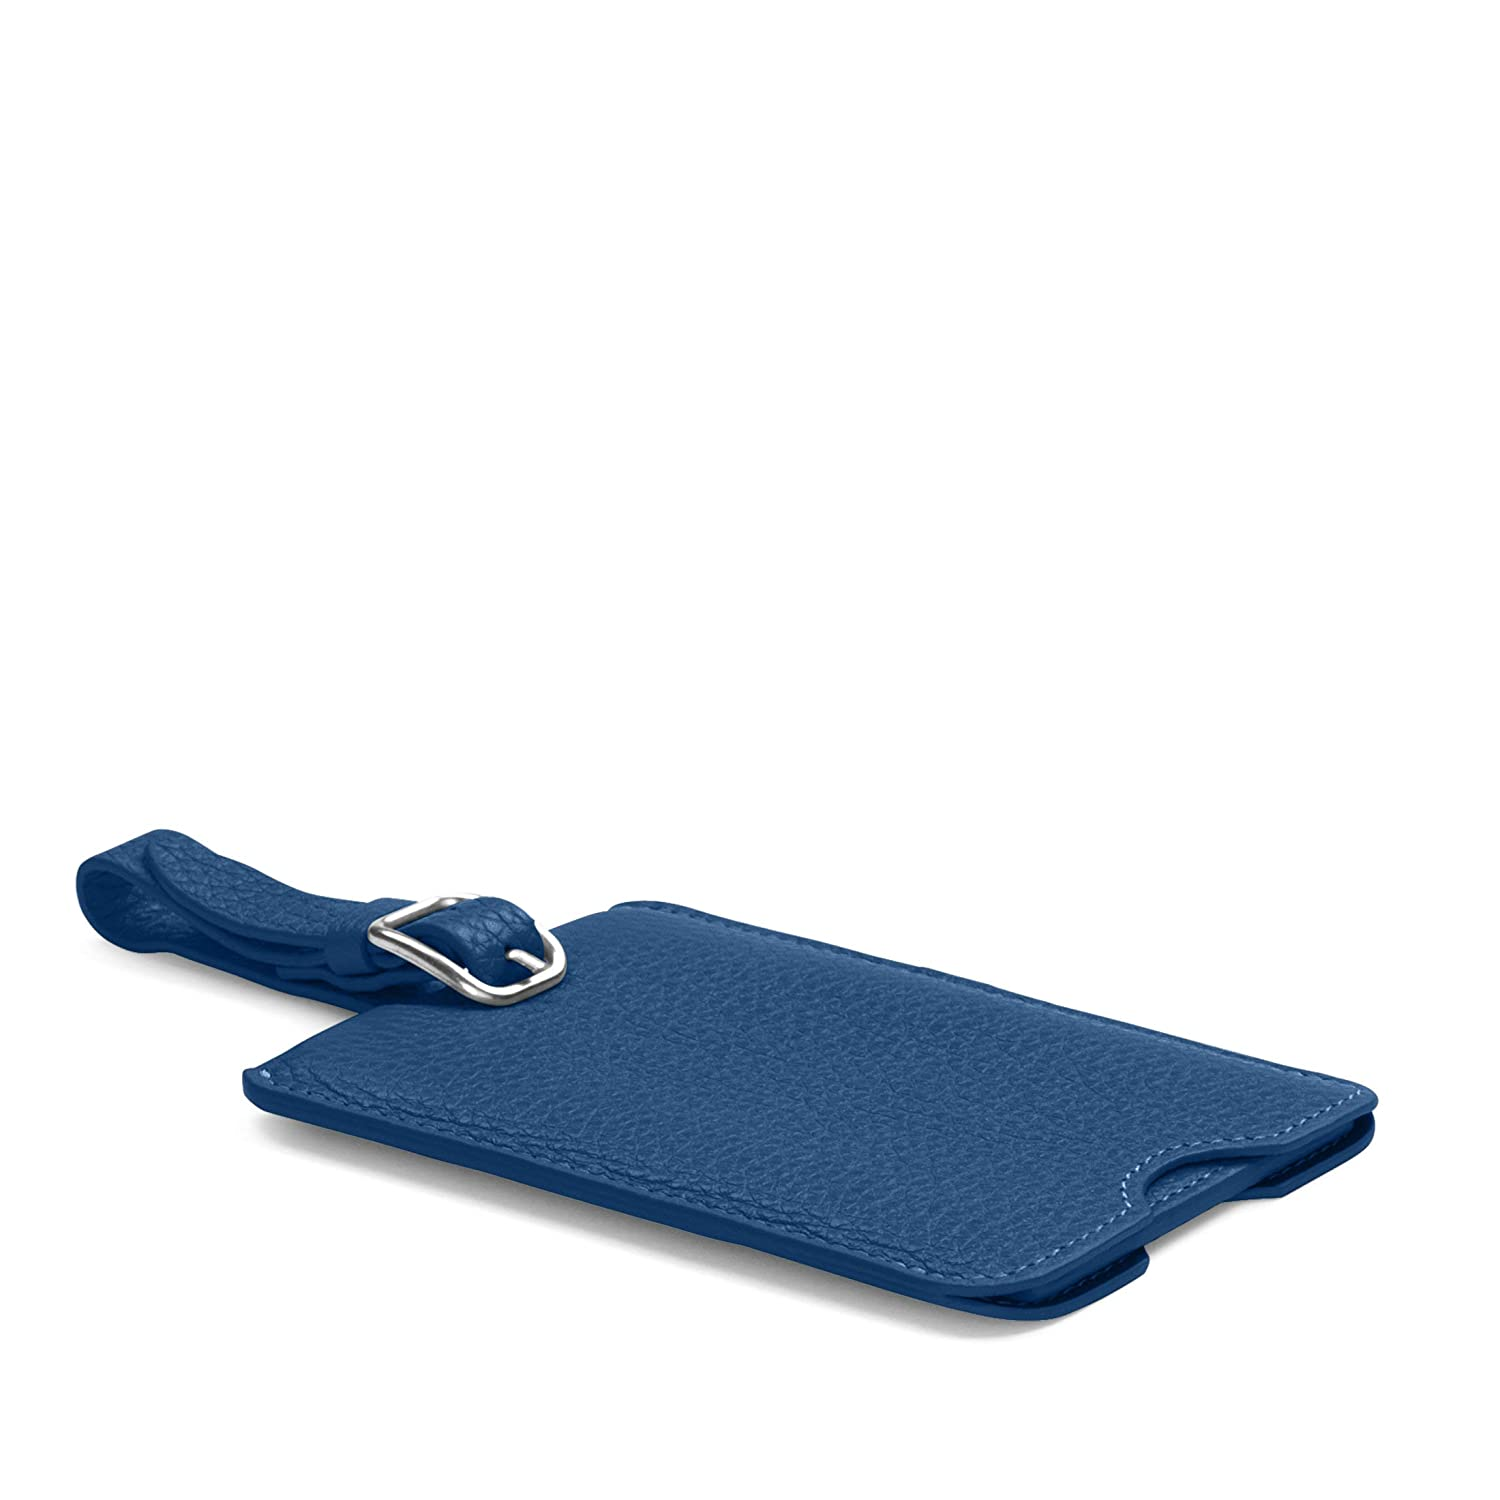 670ac524dd8d Deluxe Luggage Tag - Full Grain Leather - Cobalt (blue)